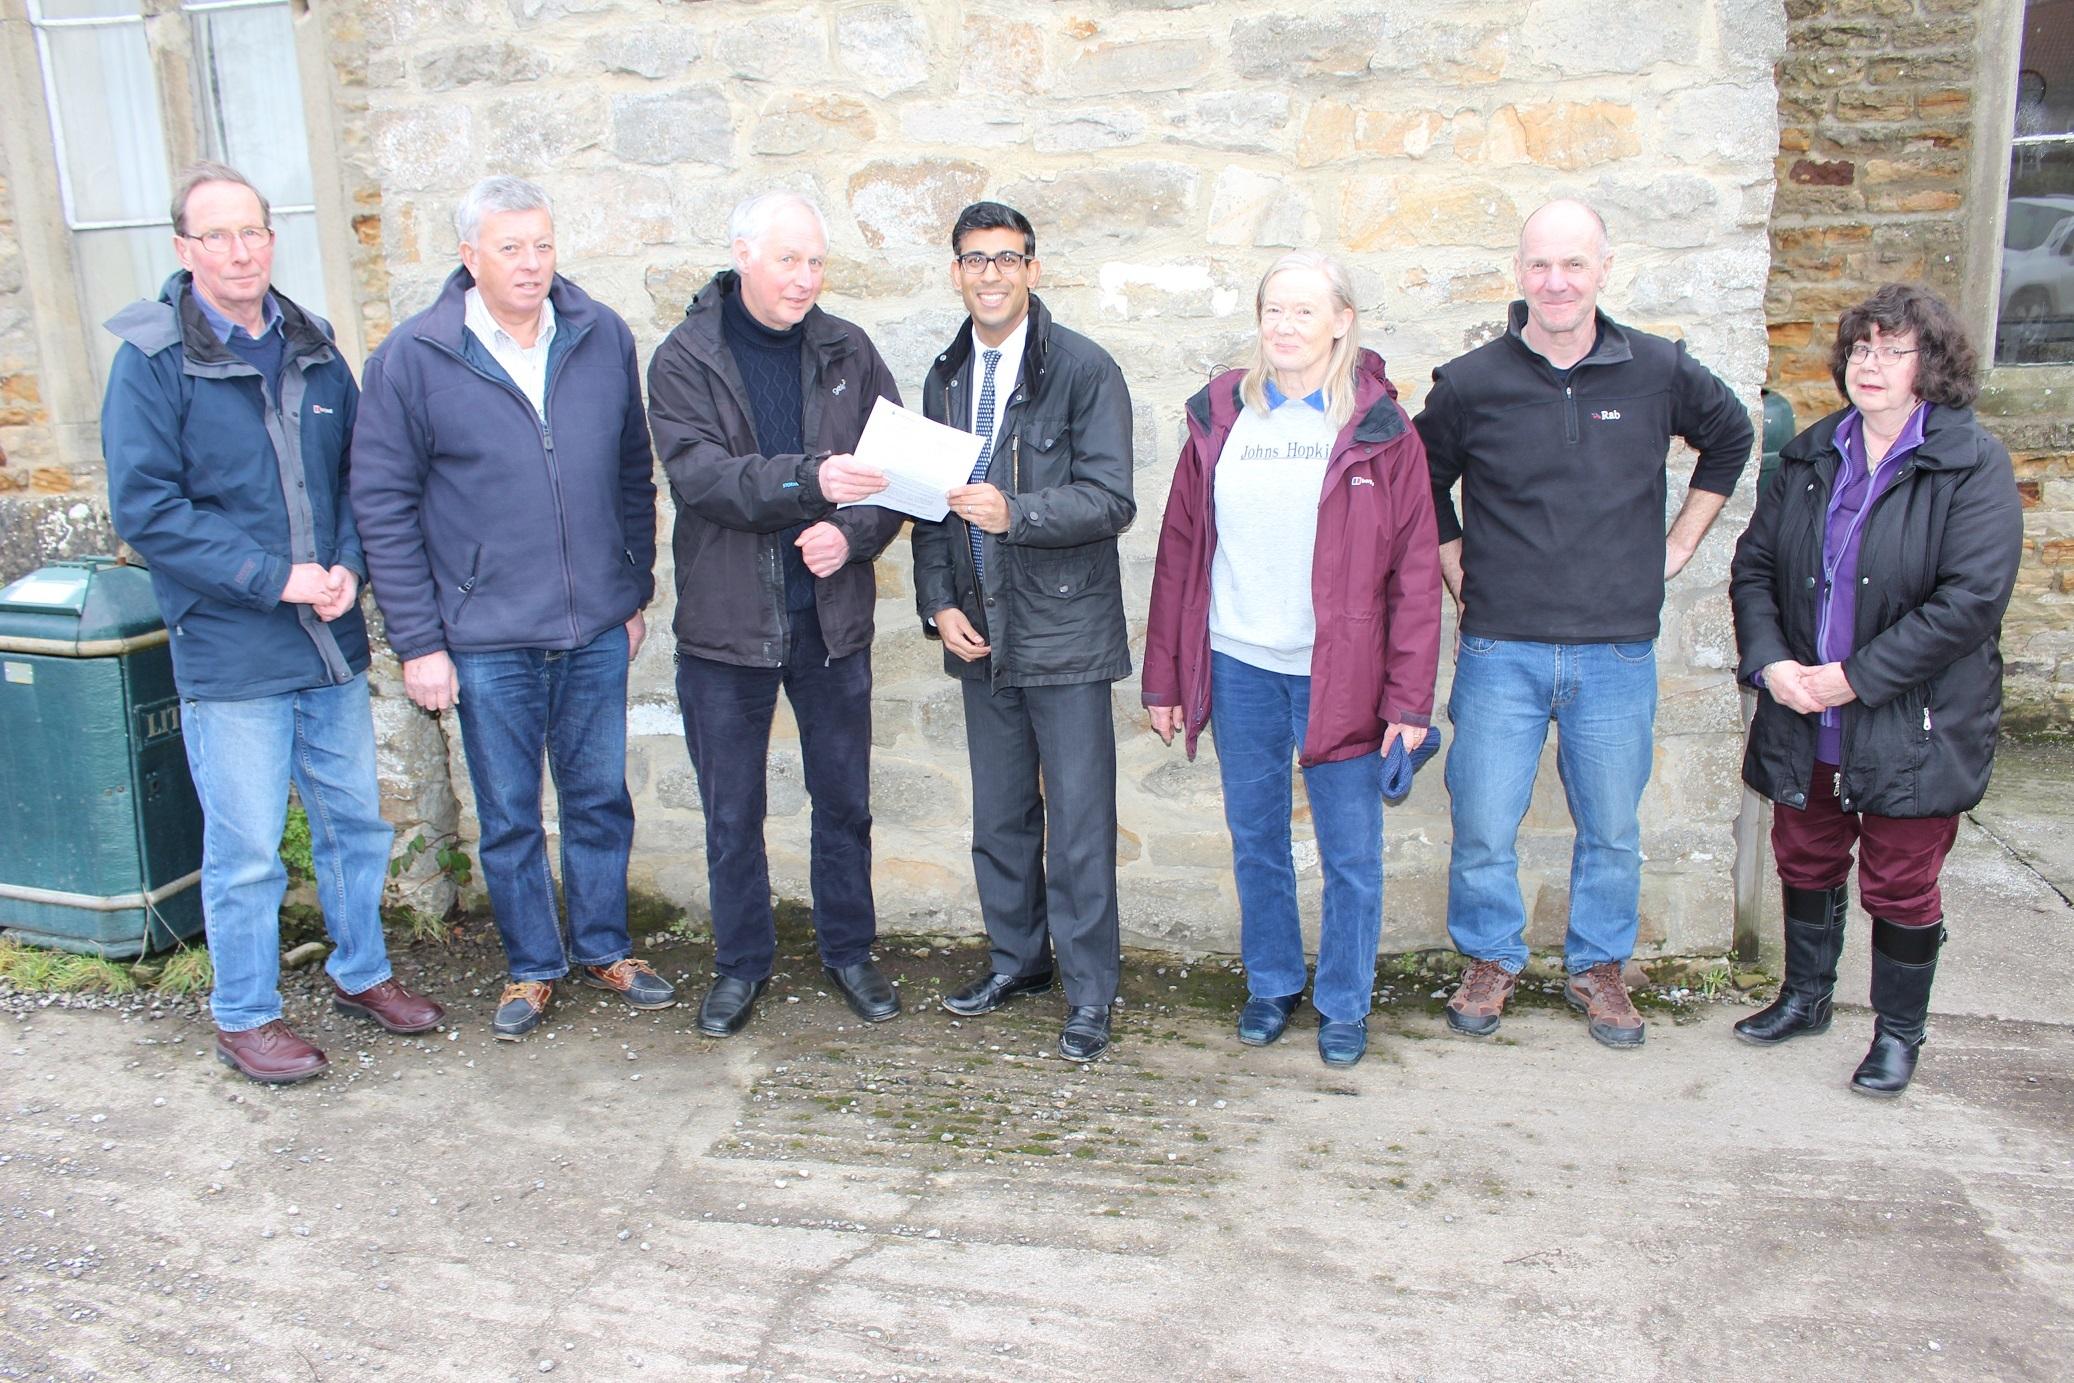 SAFETY: Rishi Sunak is presented with a dossier of evidence by members of Ravensworth Parish Council and the A66 Action Group